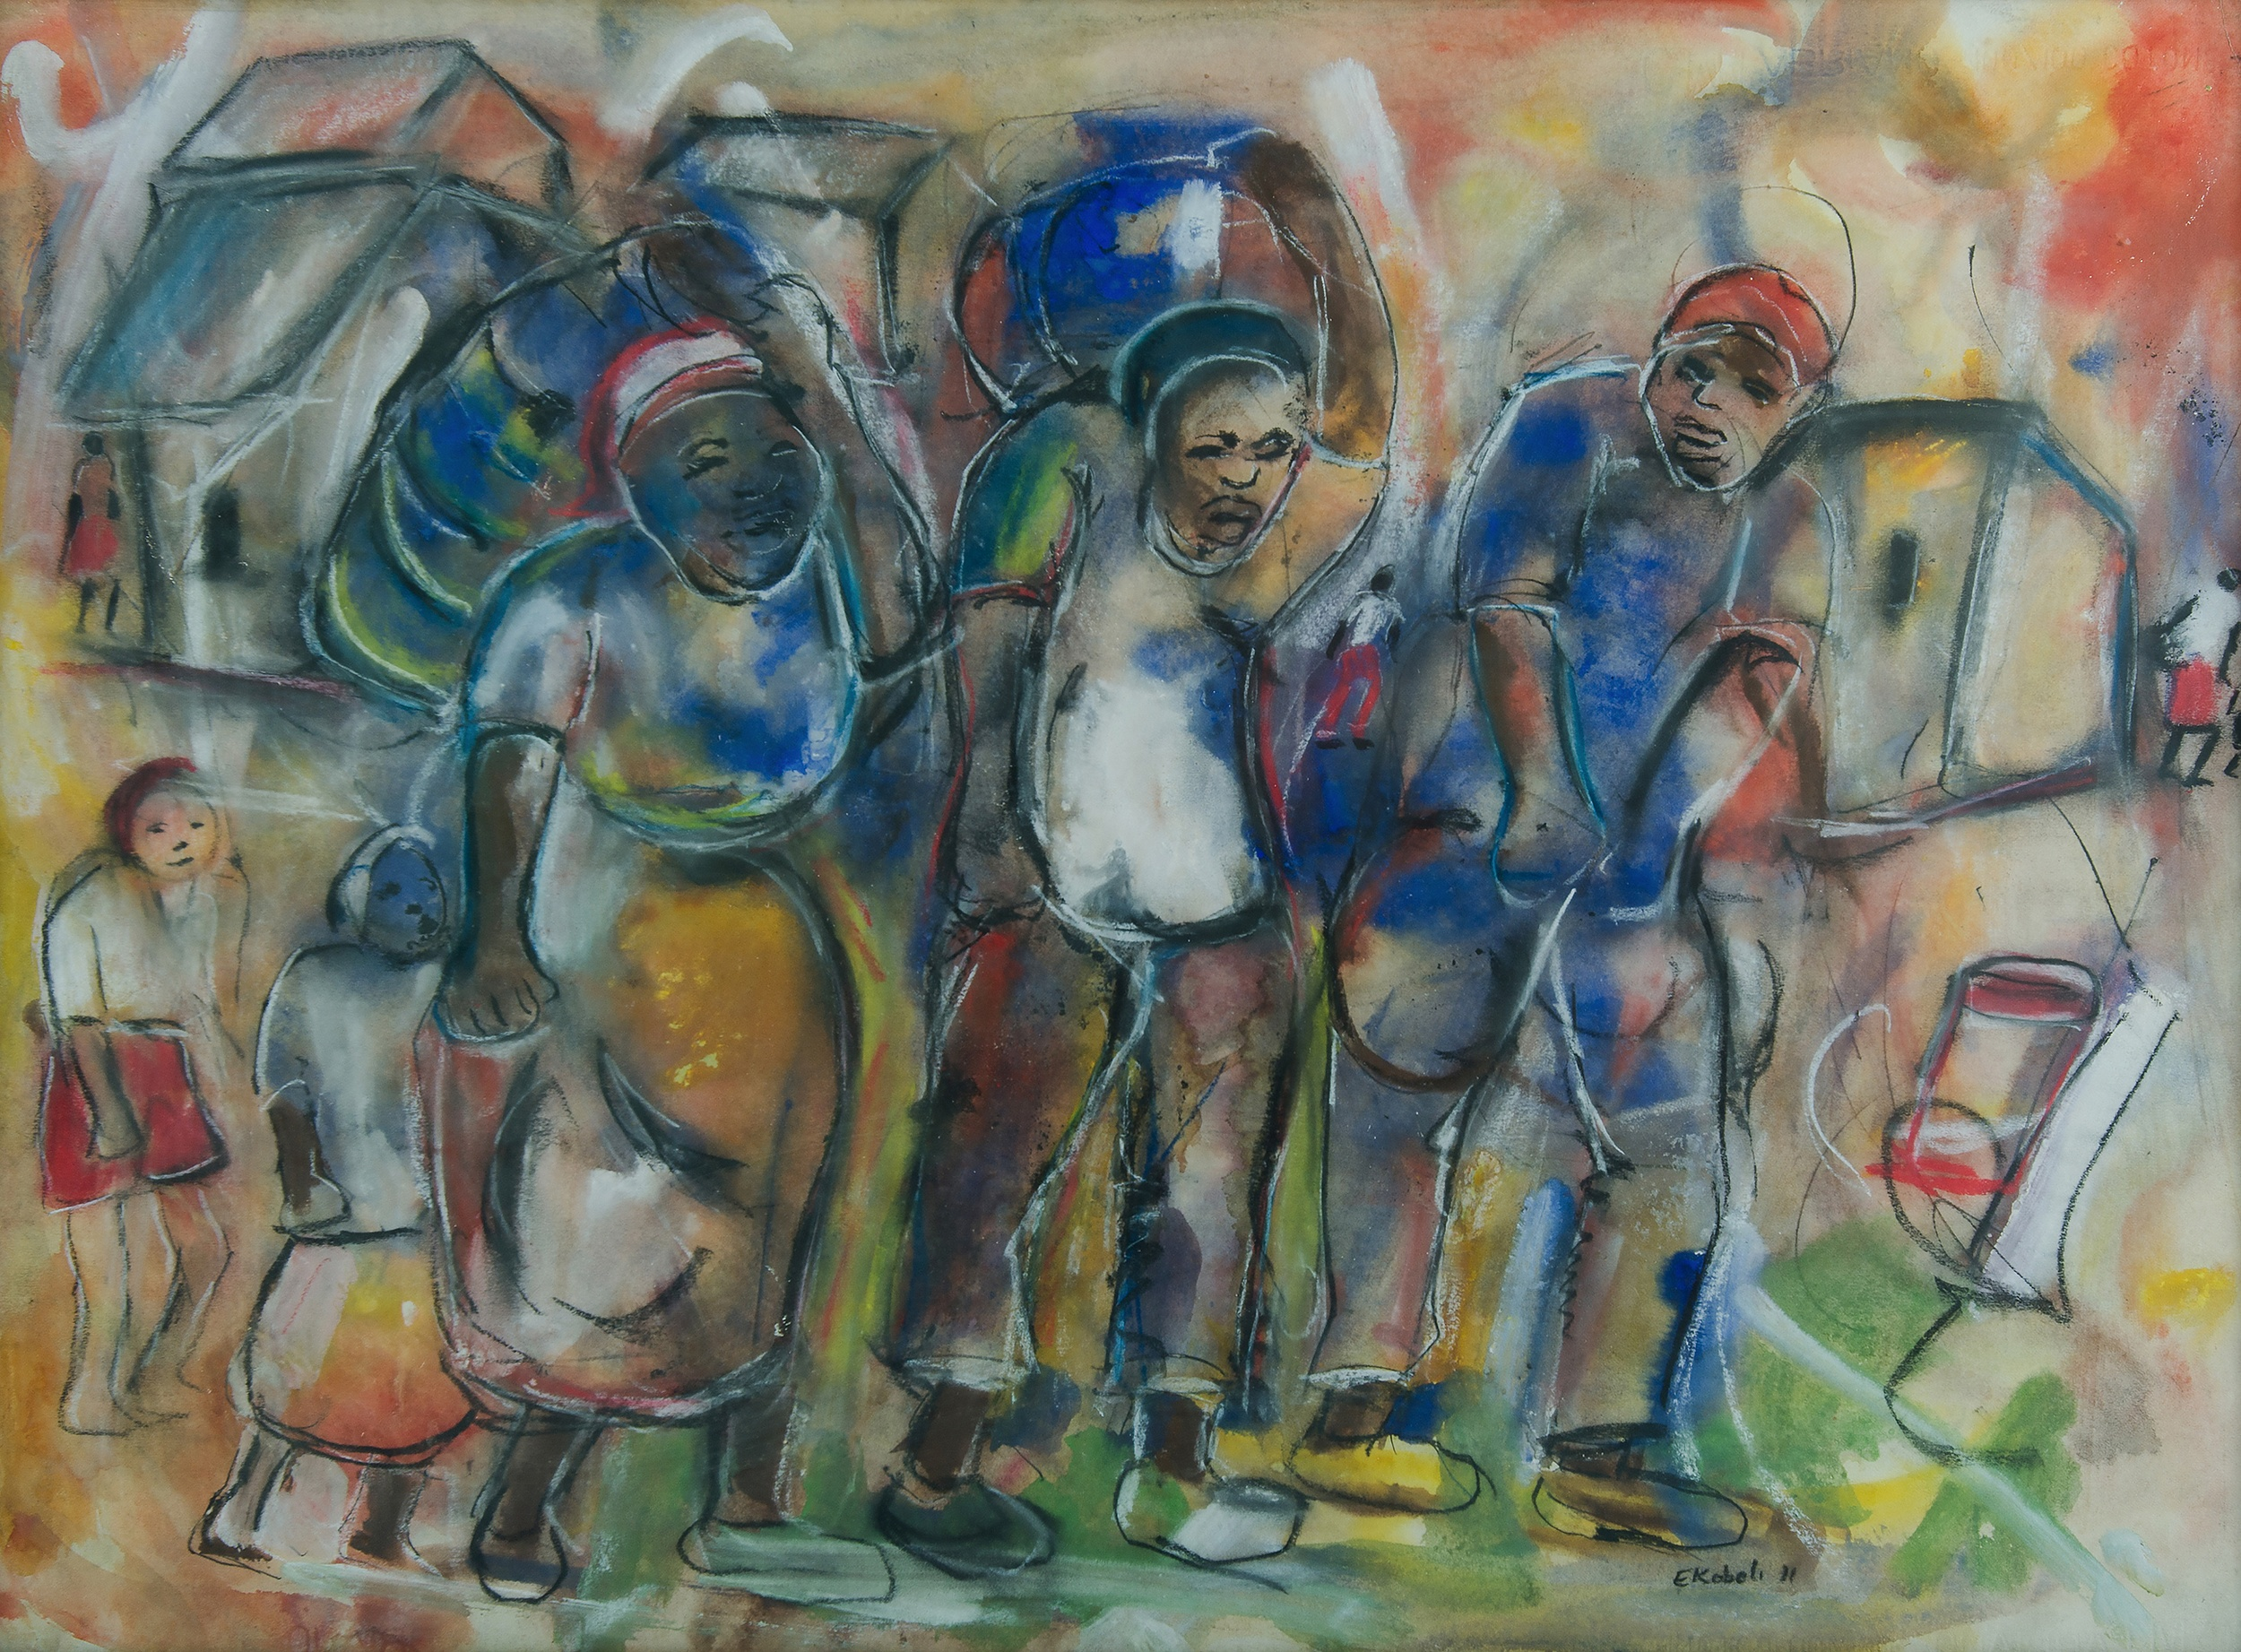 'KOBELI, Eli (South African 1932-1999): Village Scene, 1971 Mixed Media on Paper'